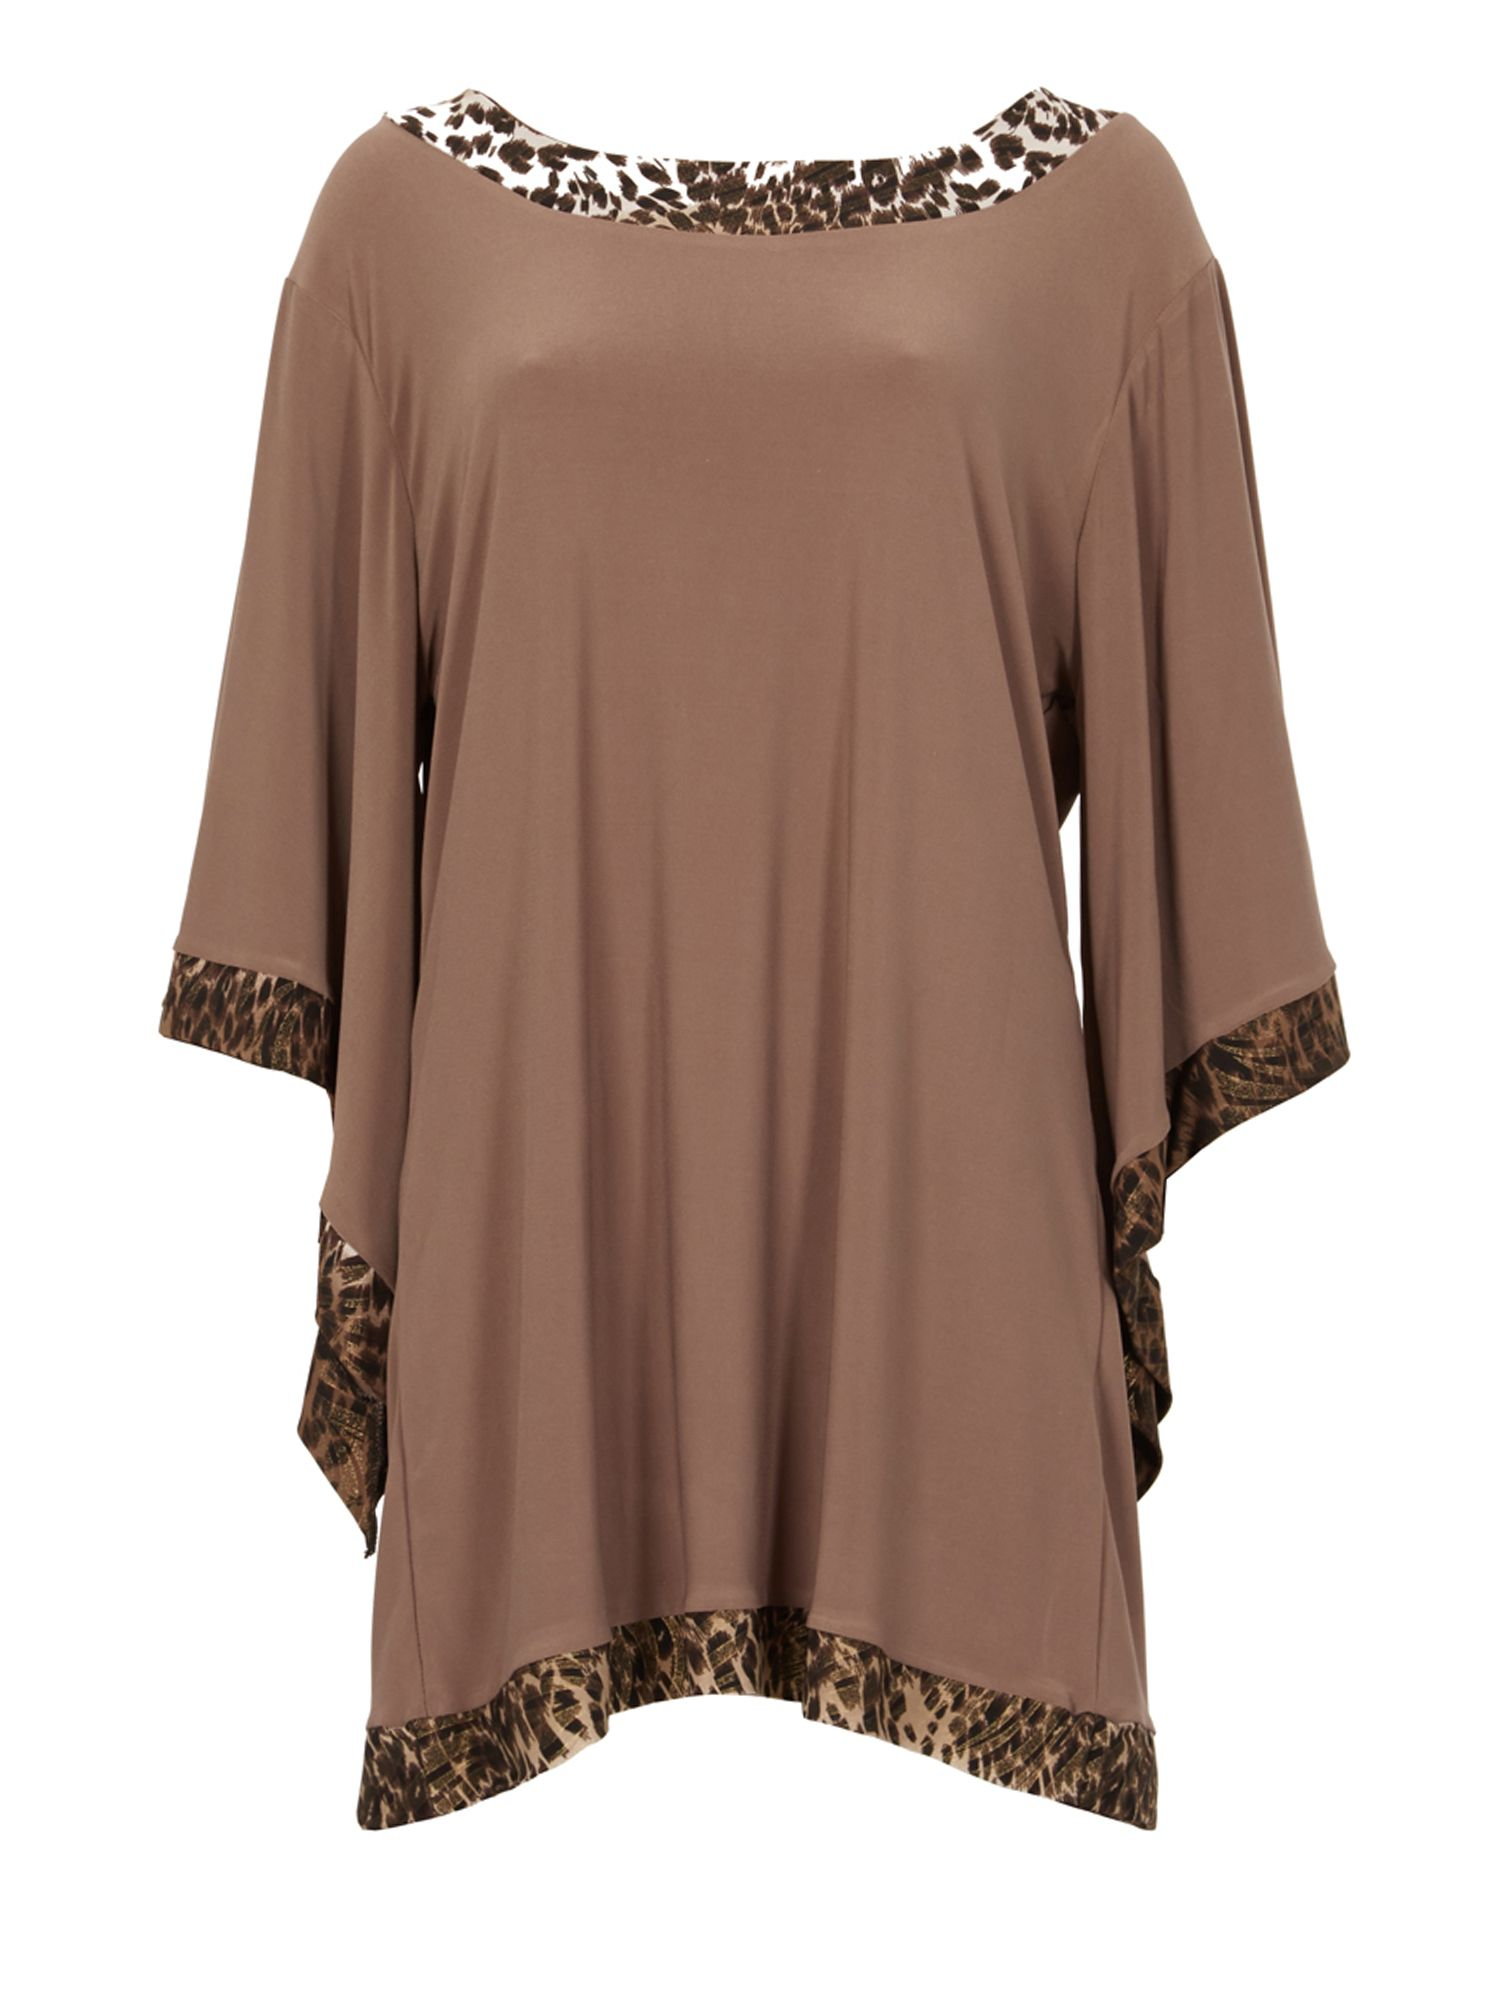 Feverfish Flared Sleeve Print Contrast Tunic, Brown